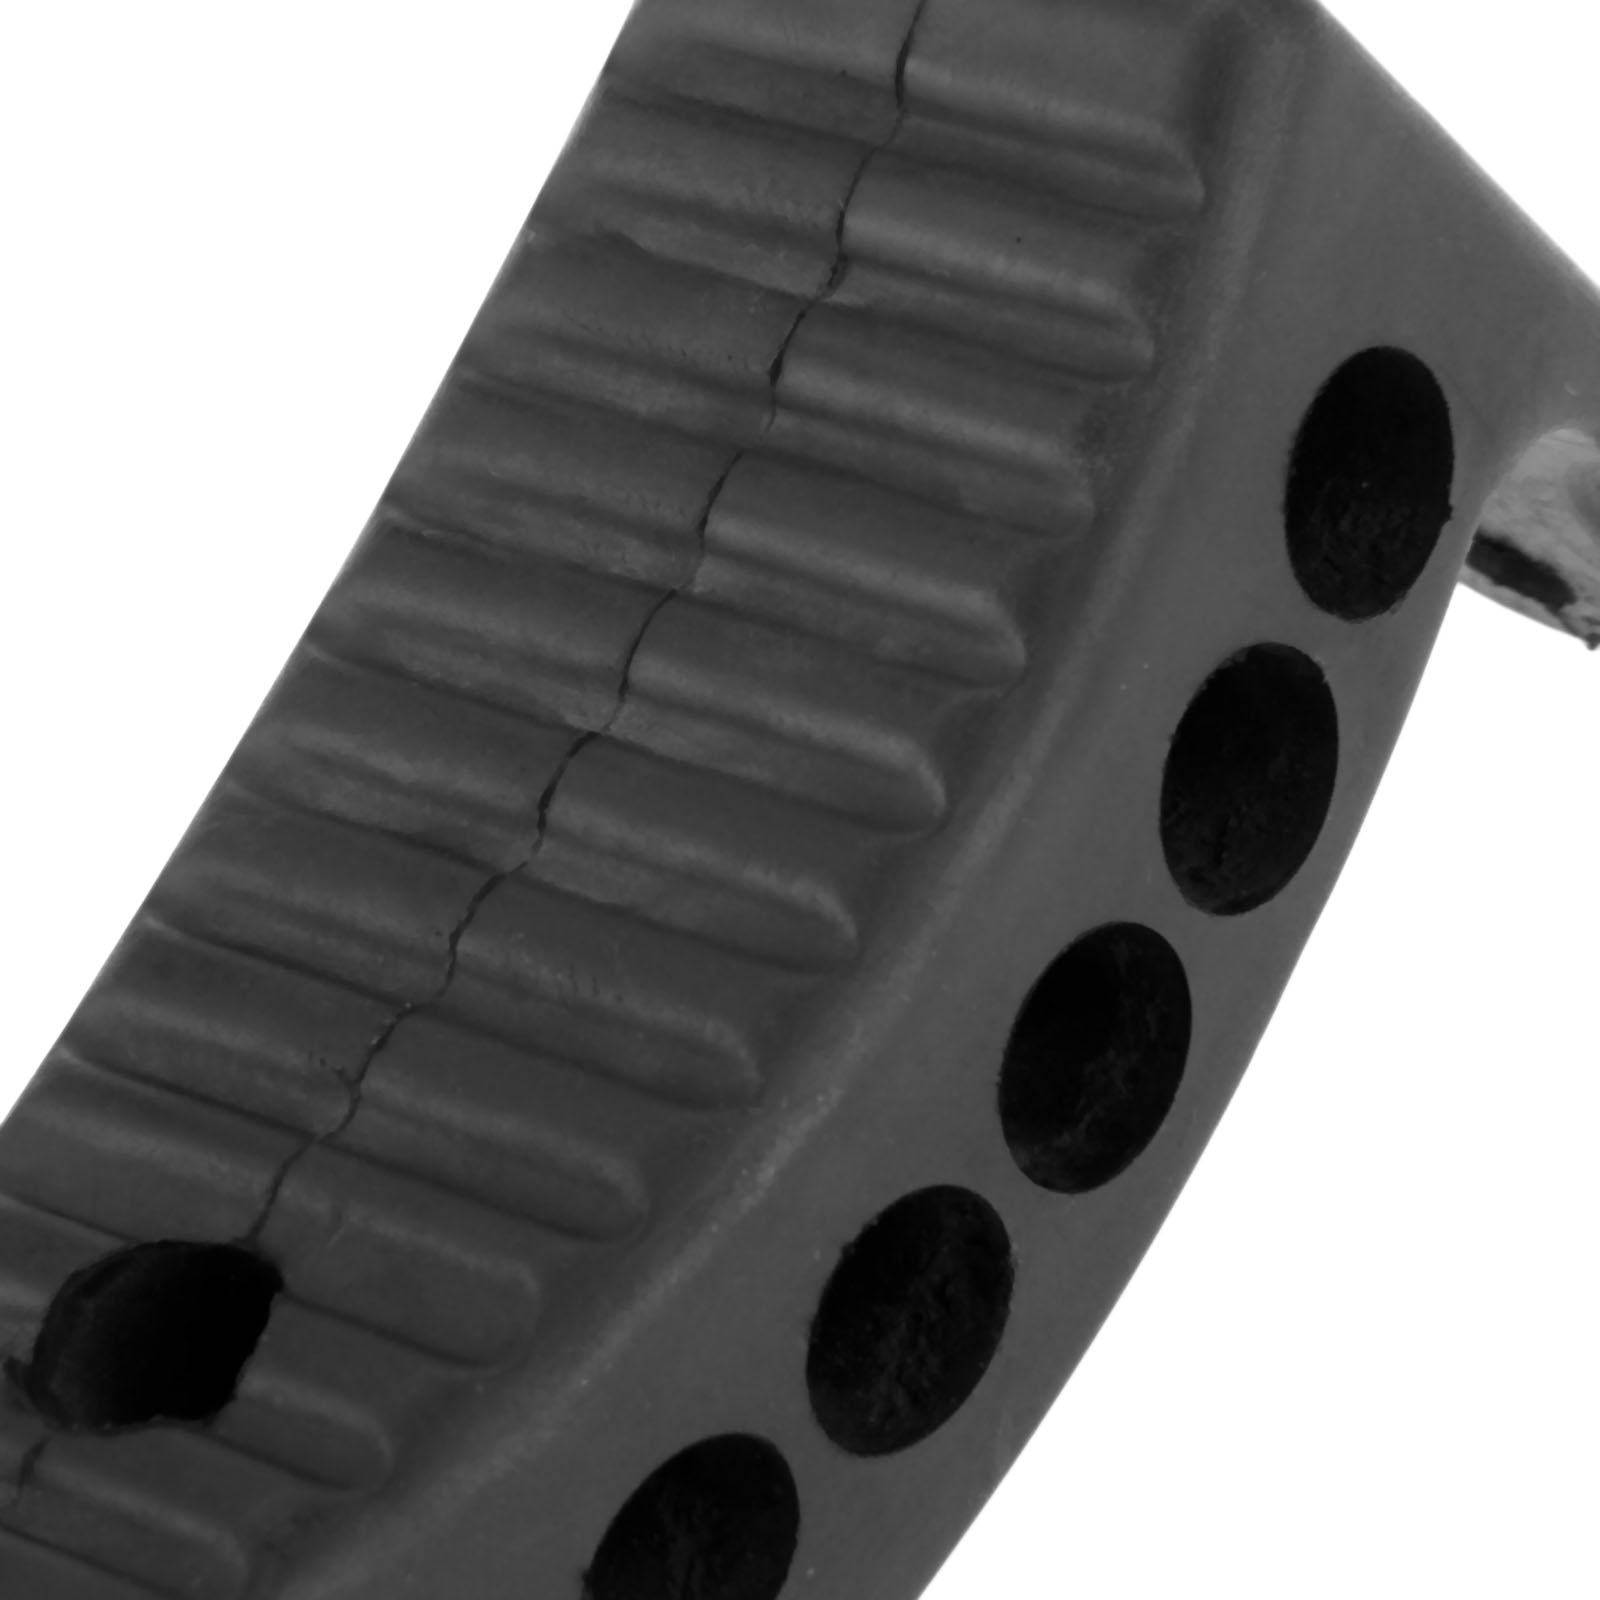 1 inch Recoil Buttpad Compatible with Reger 10//22 1022 and Mini 14//30 1430